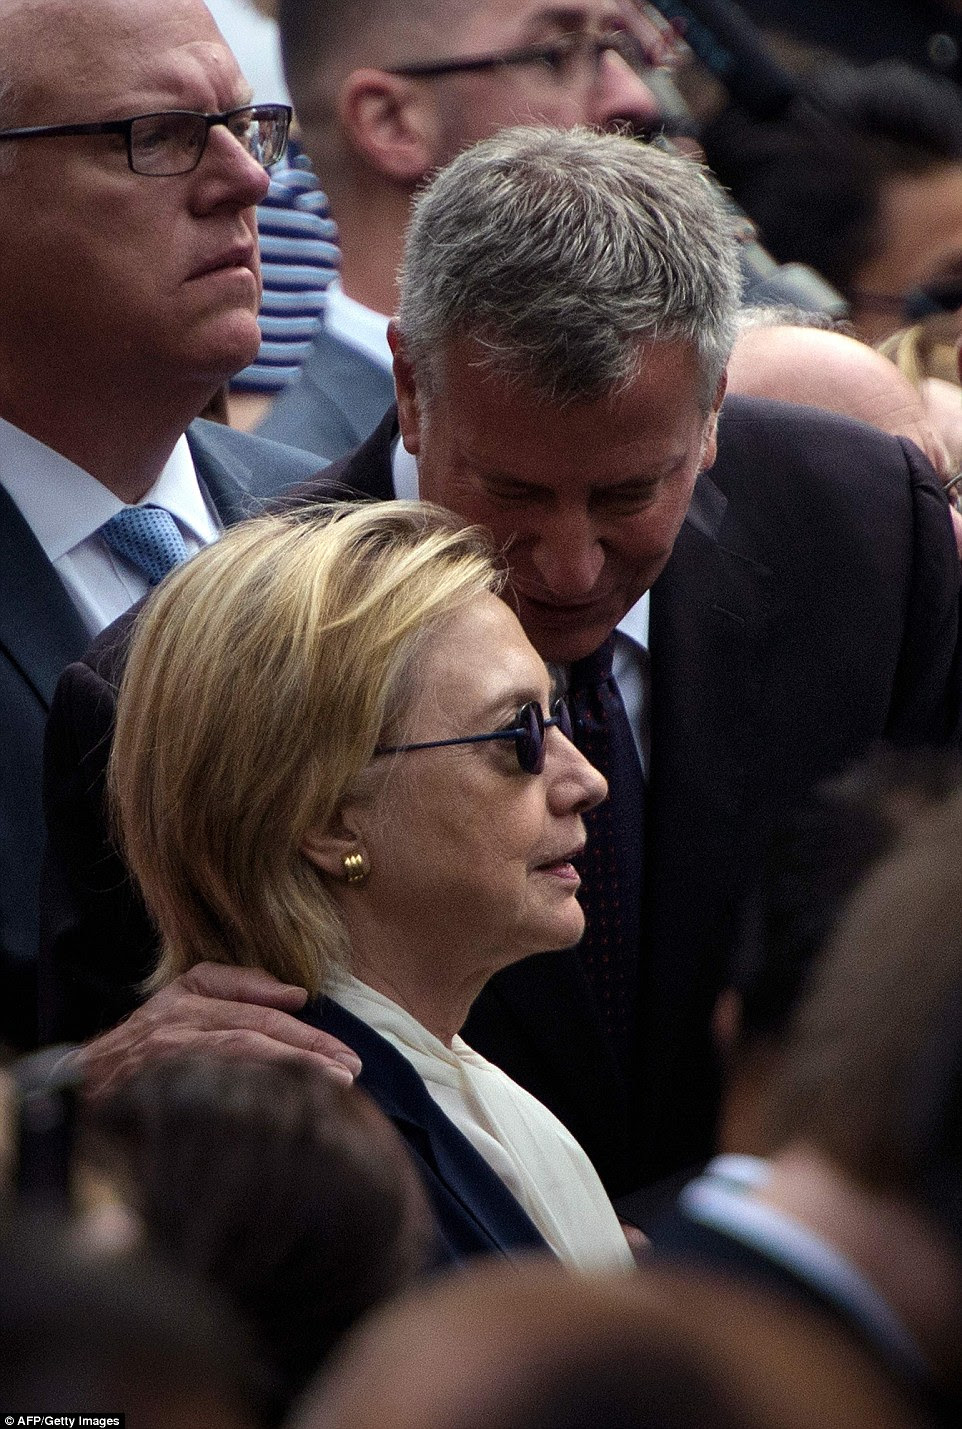 Hillary was joined by politicians, including Bill de Blasio, as mourners remembered the 15th anniversary of the attacks